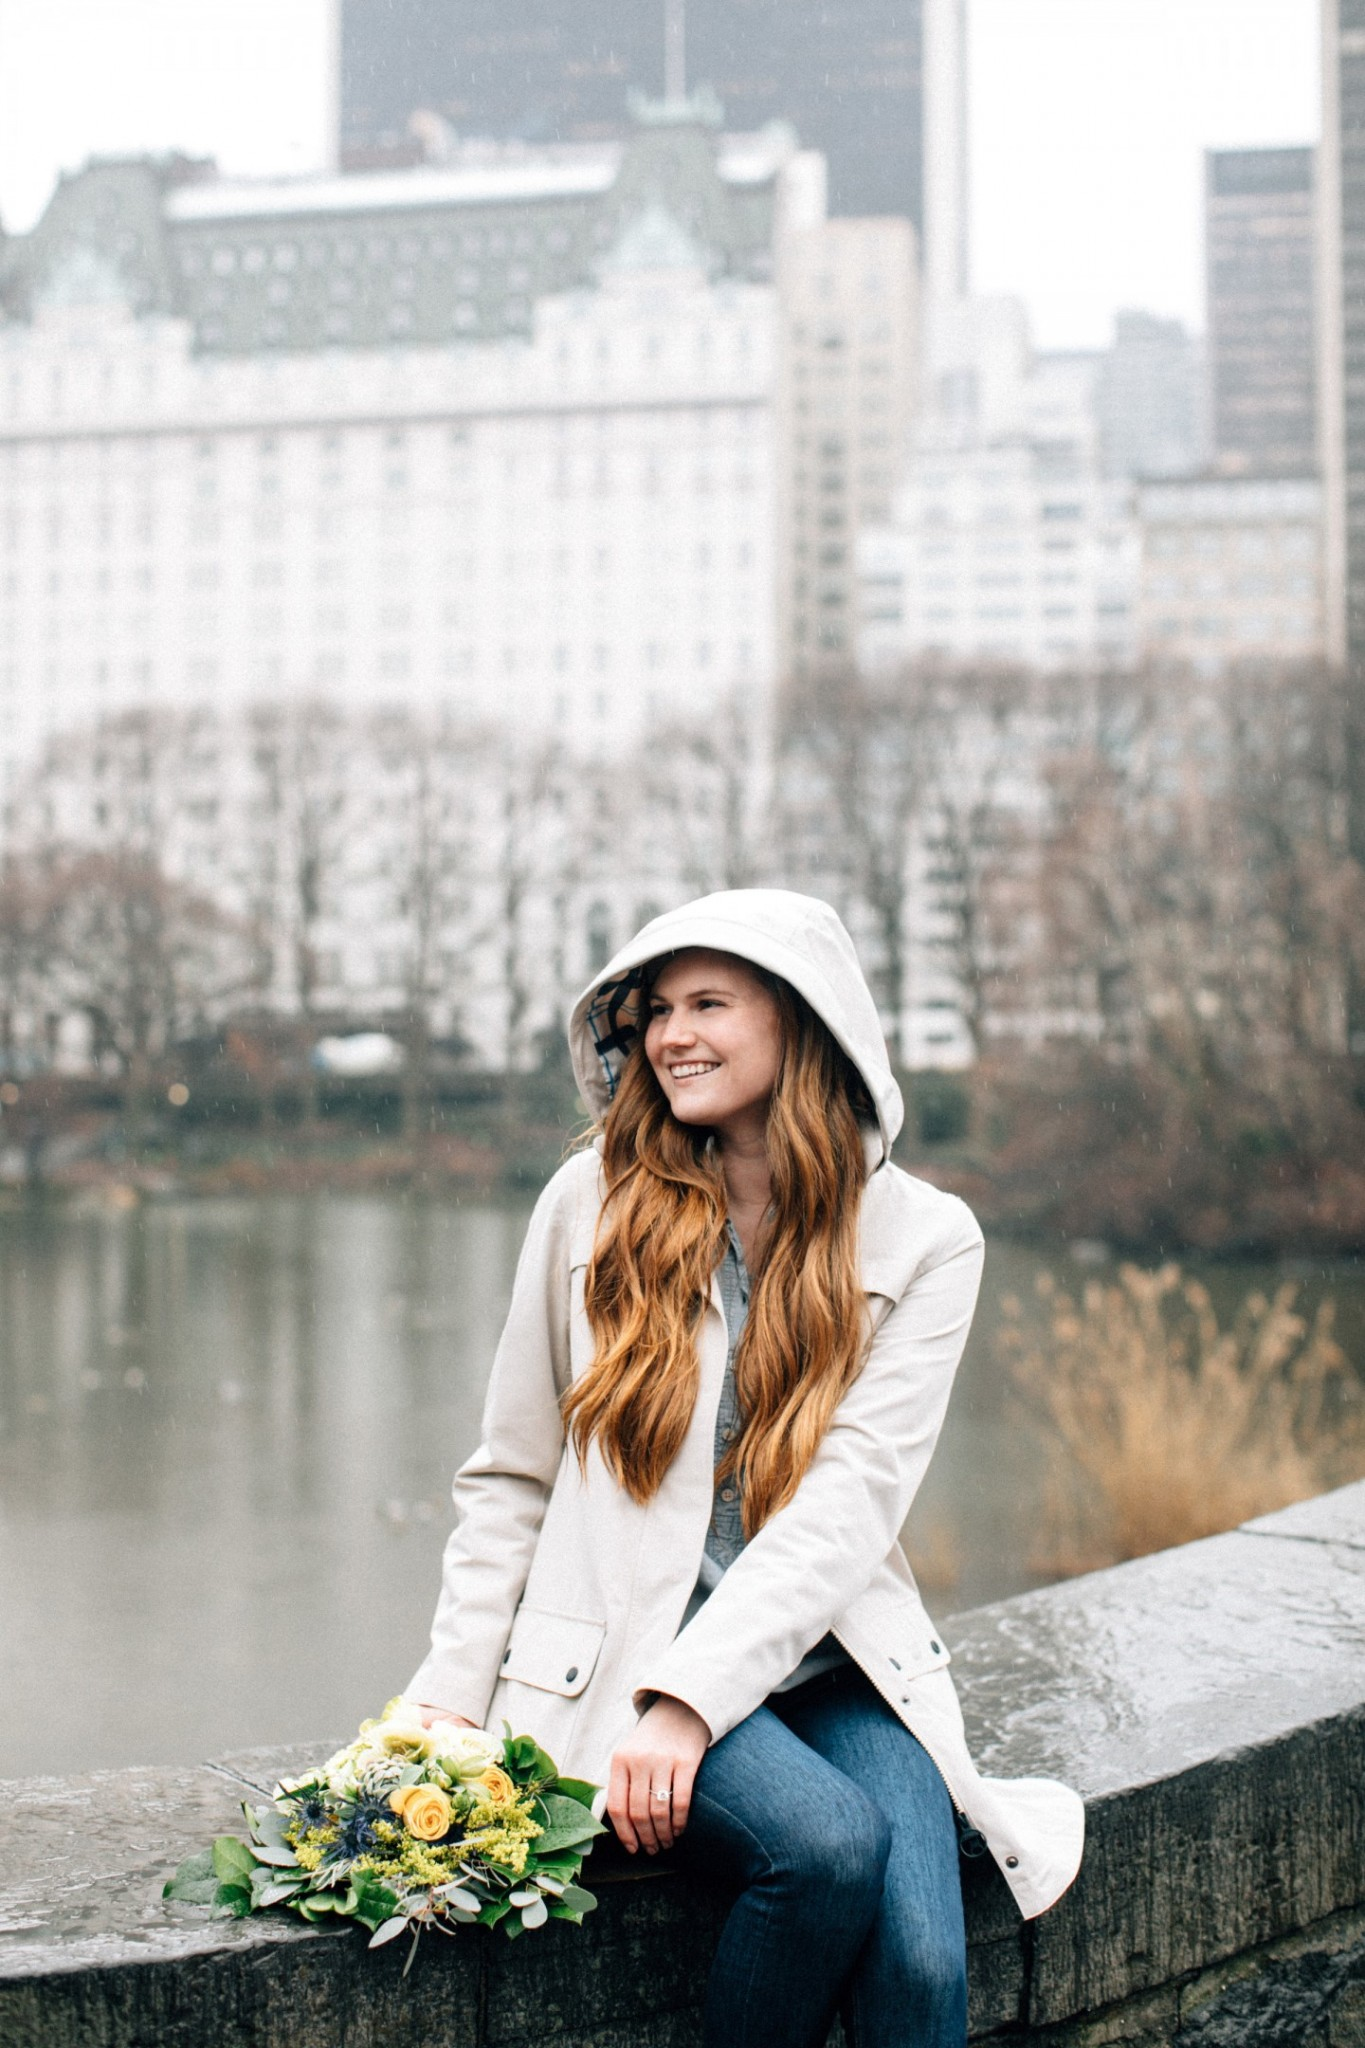 Lifestyle blogger Mollie Moore shares the new Weather Comfort Collection from Barbour | The new Barbour Weather Comfort Collection featured by top London fashion blog, Mollie Moore: the Almanac Jacket